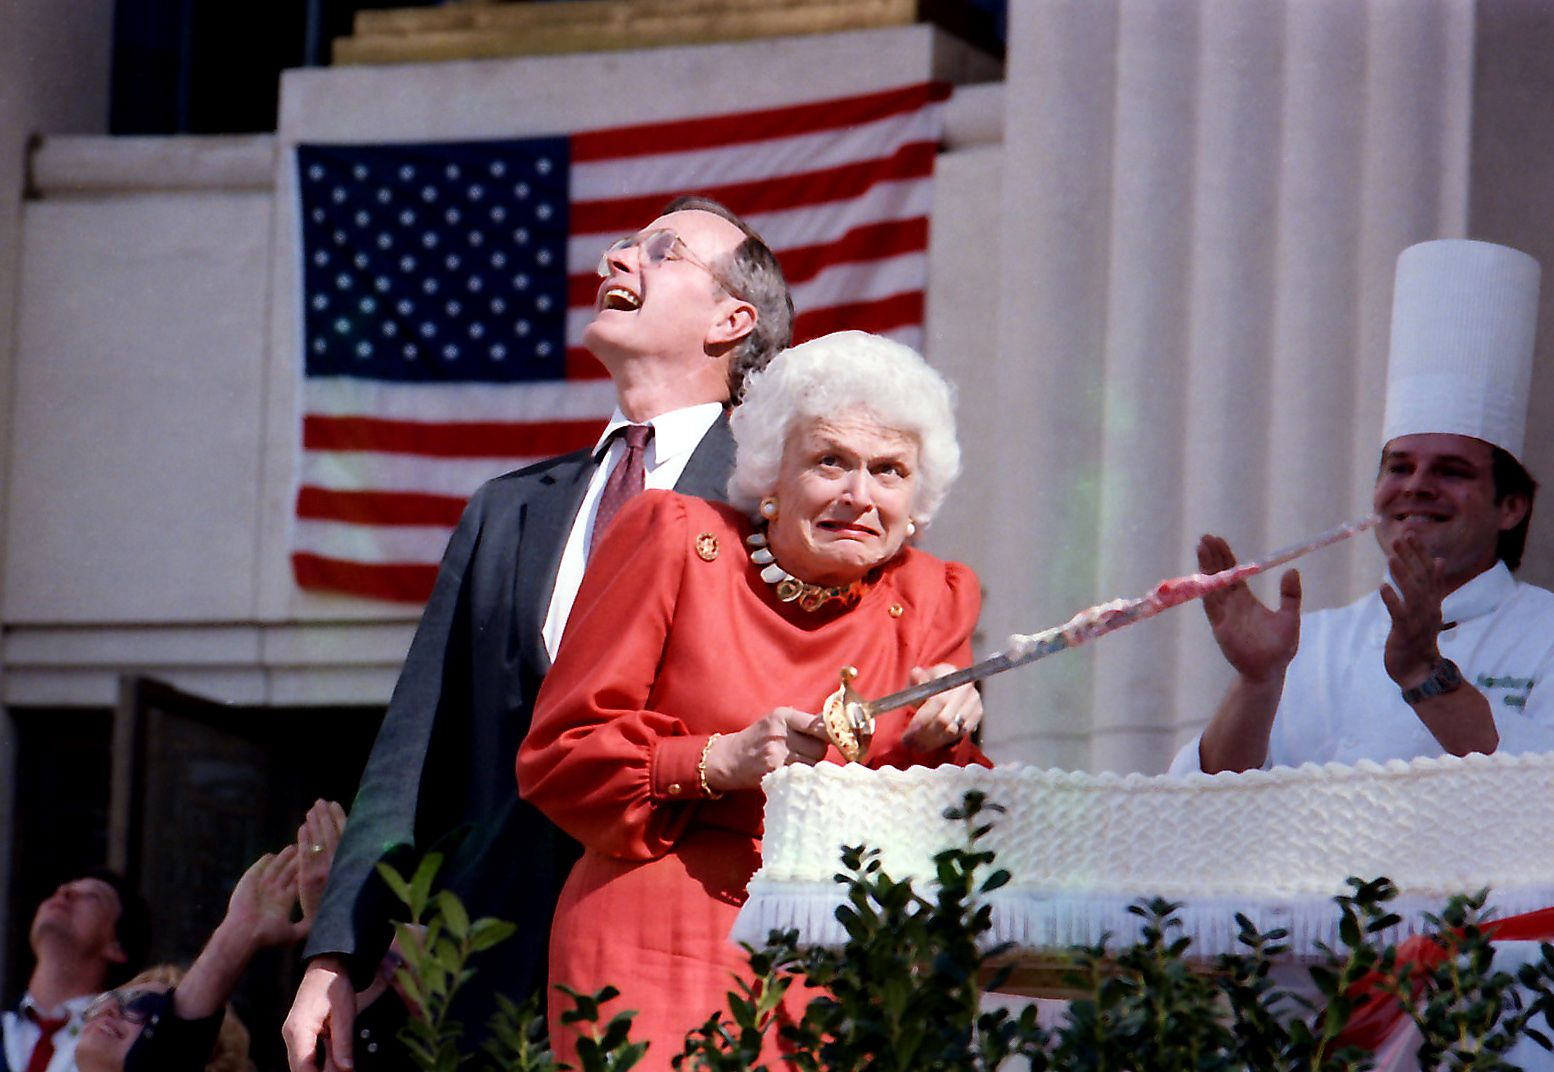 Barbara Bush cringes as a low-flying jet ceremonially passes overhead during cake-cutting ceremonies for the Texas sesquicentennial held at Fair Park on March 2, 1986. At the time, her husband, standing behind her, was vice president.